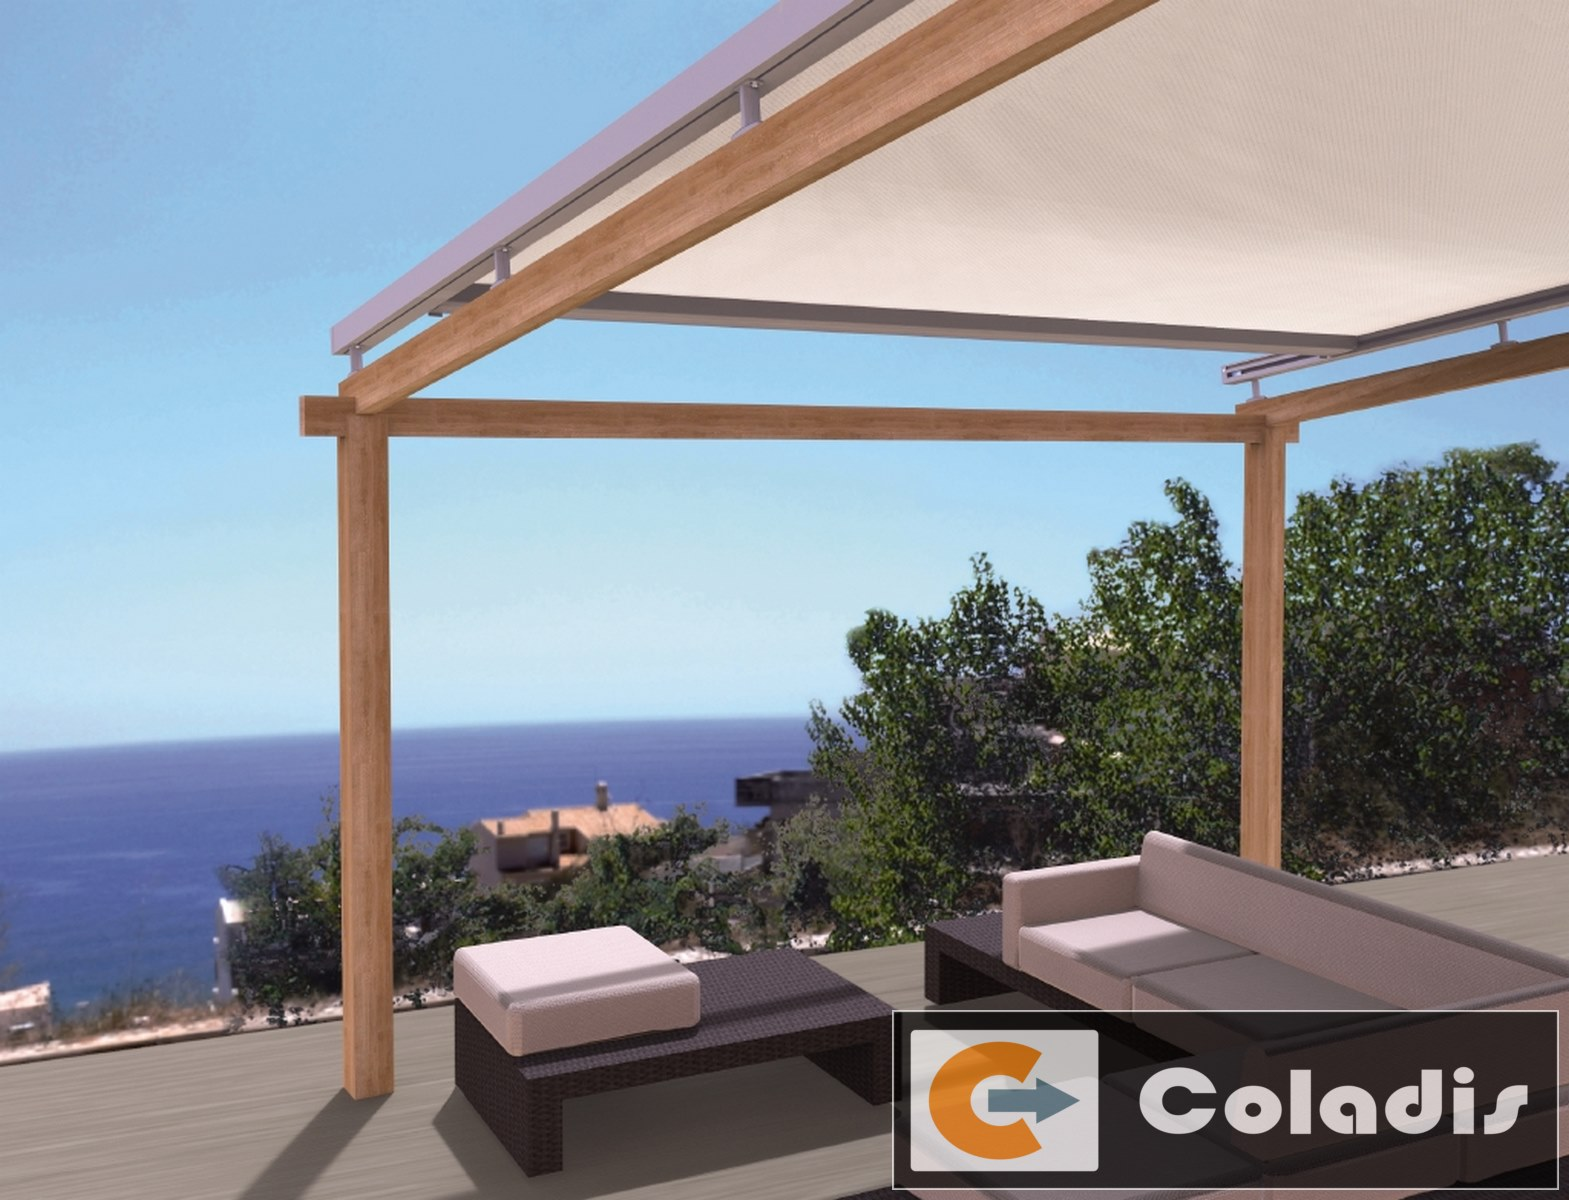 fabricant de pergola alu haut de gamme montpellier coladis. Black Bedroom Furniture Sets. Home Design Ideas